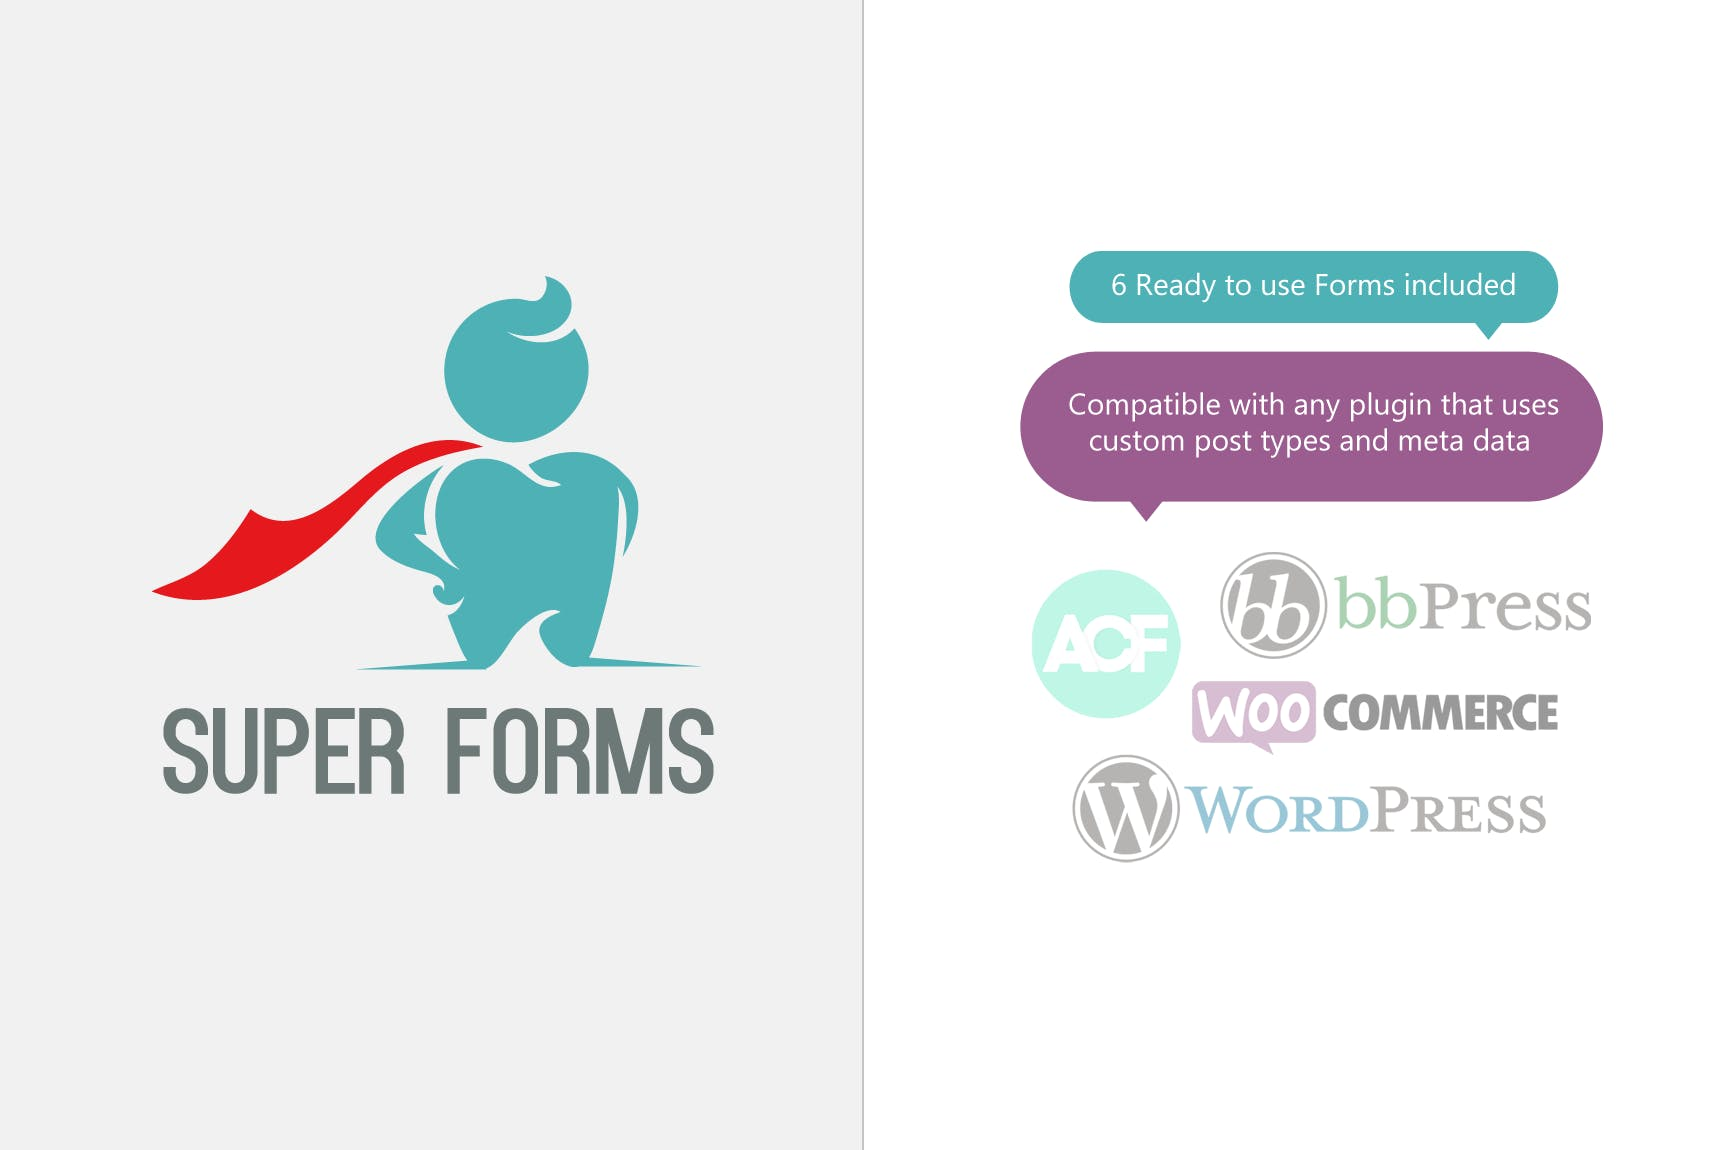 Super Forms - Drag & Drop Form Builder by feeling4design on